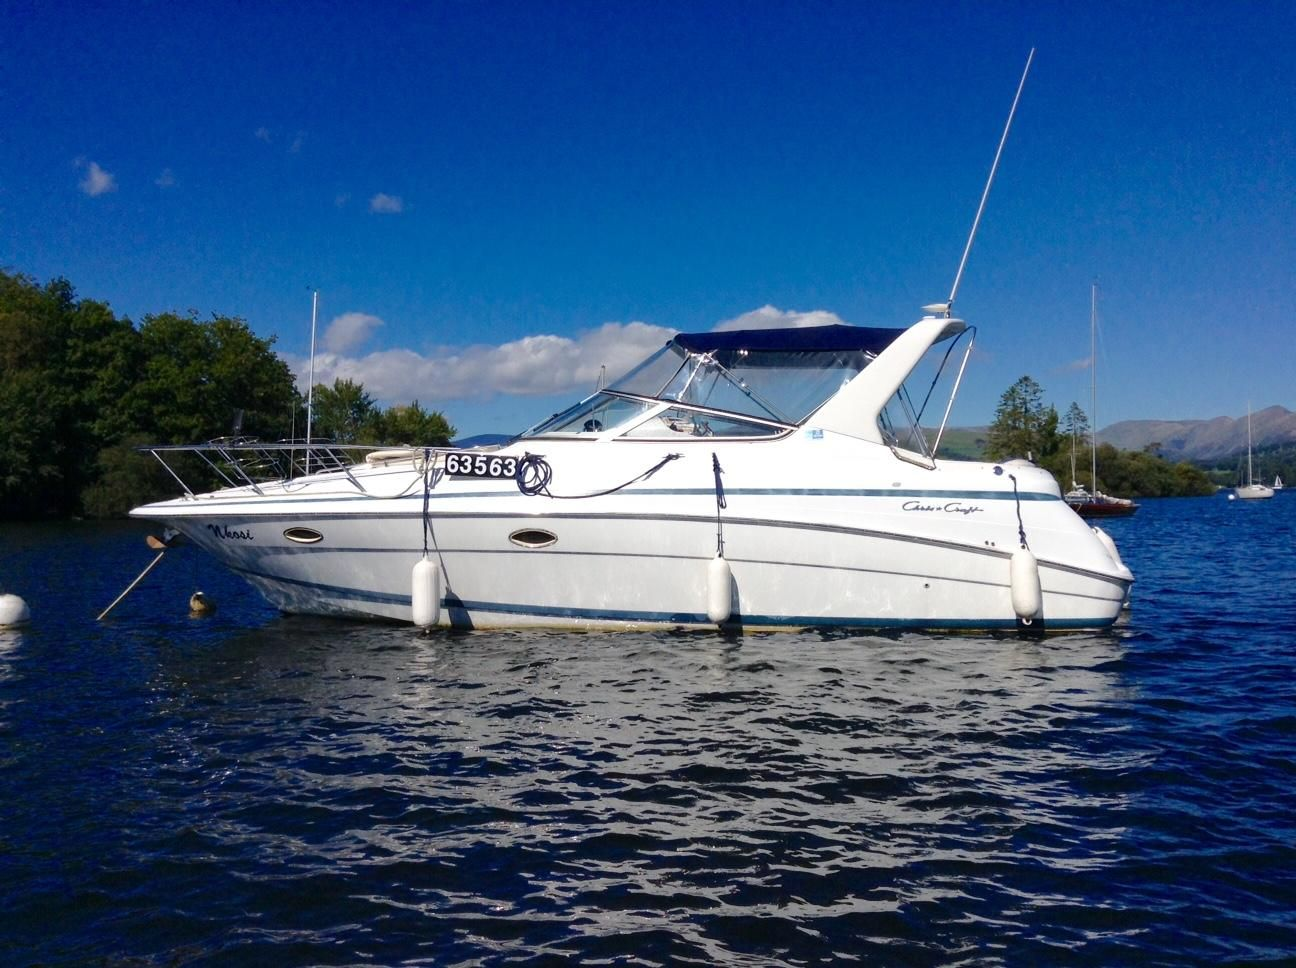 1999 chris craft 320 express cruiser power boat for sale for Chris craft express cruiser for sale